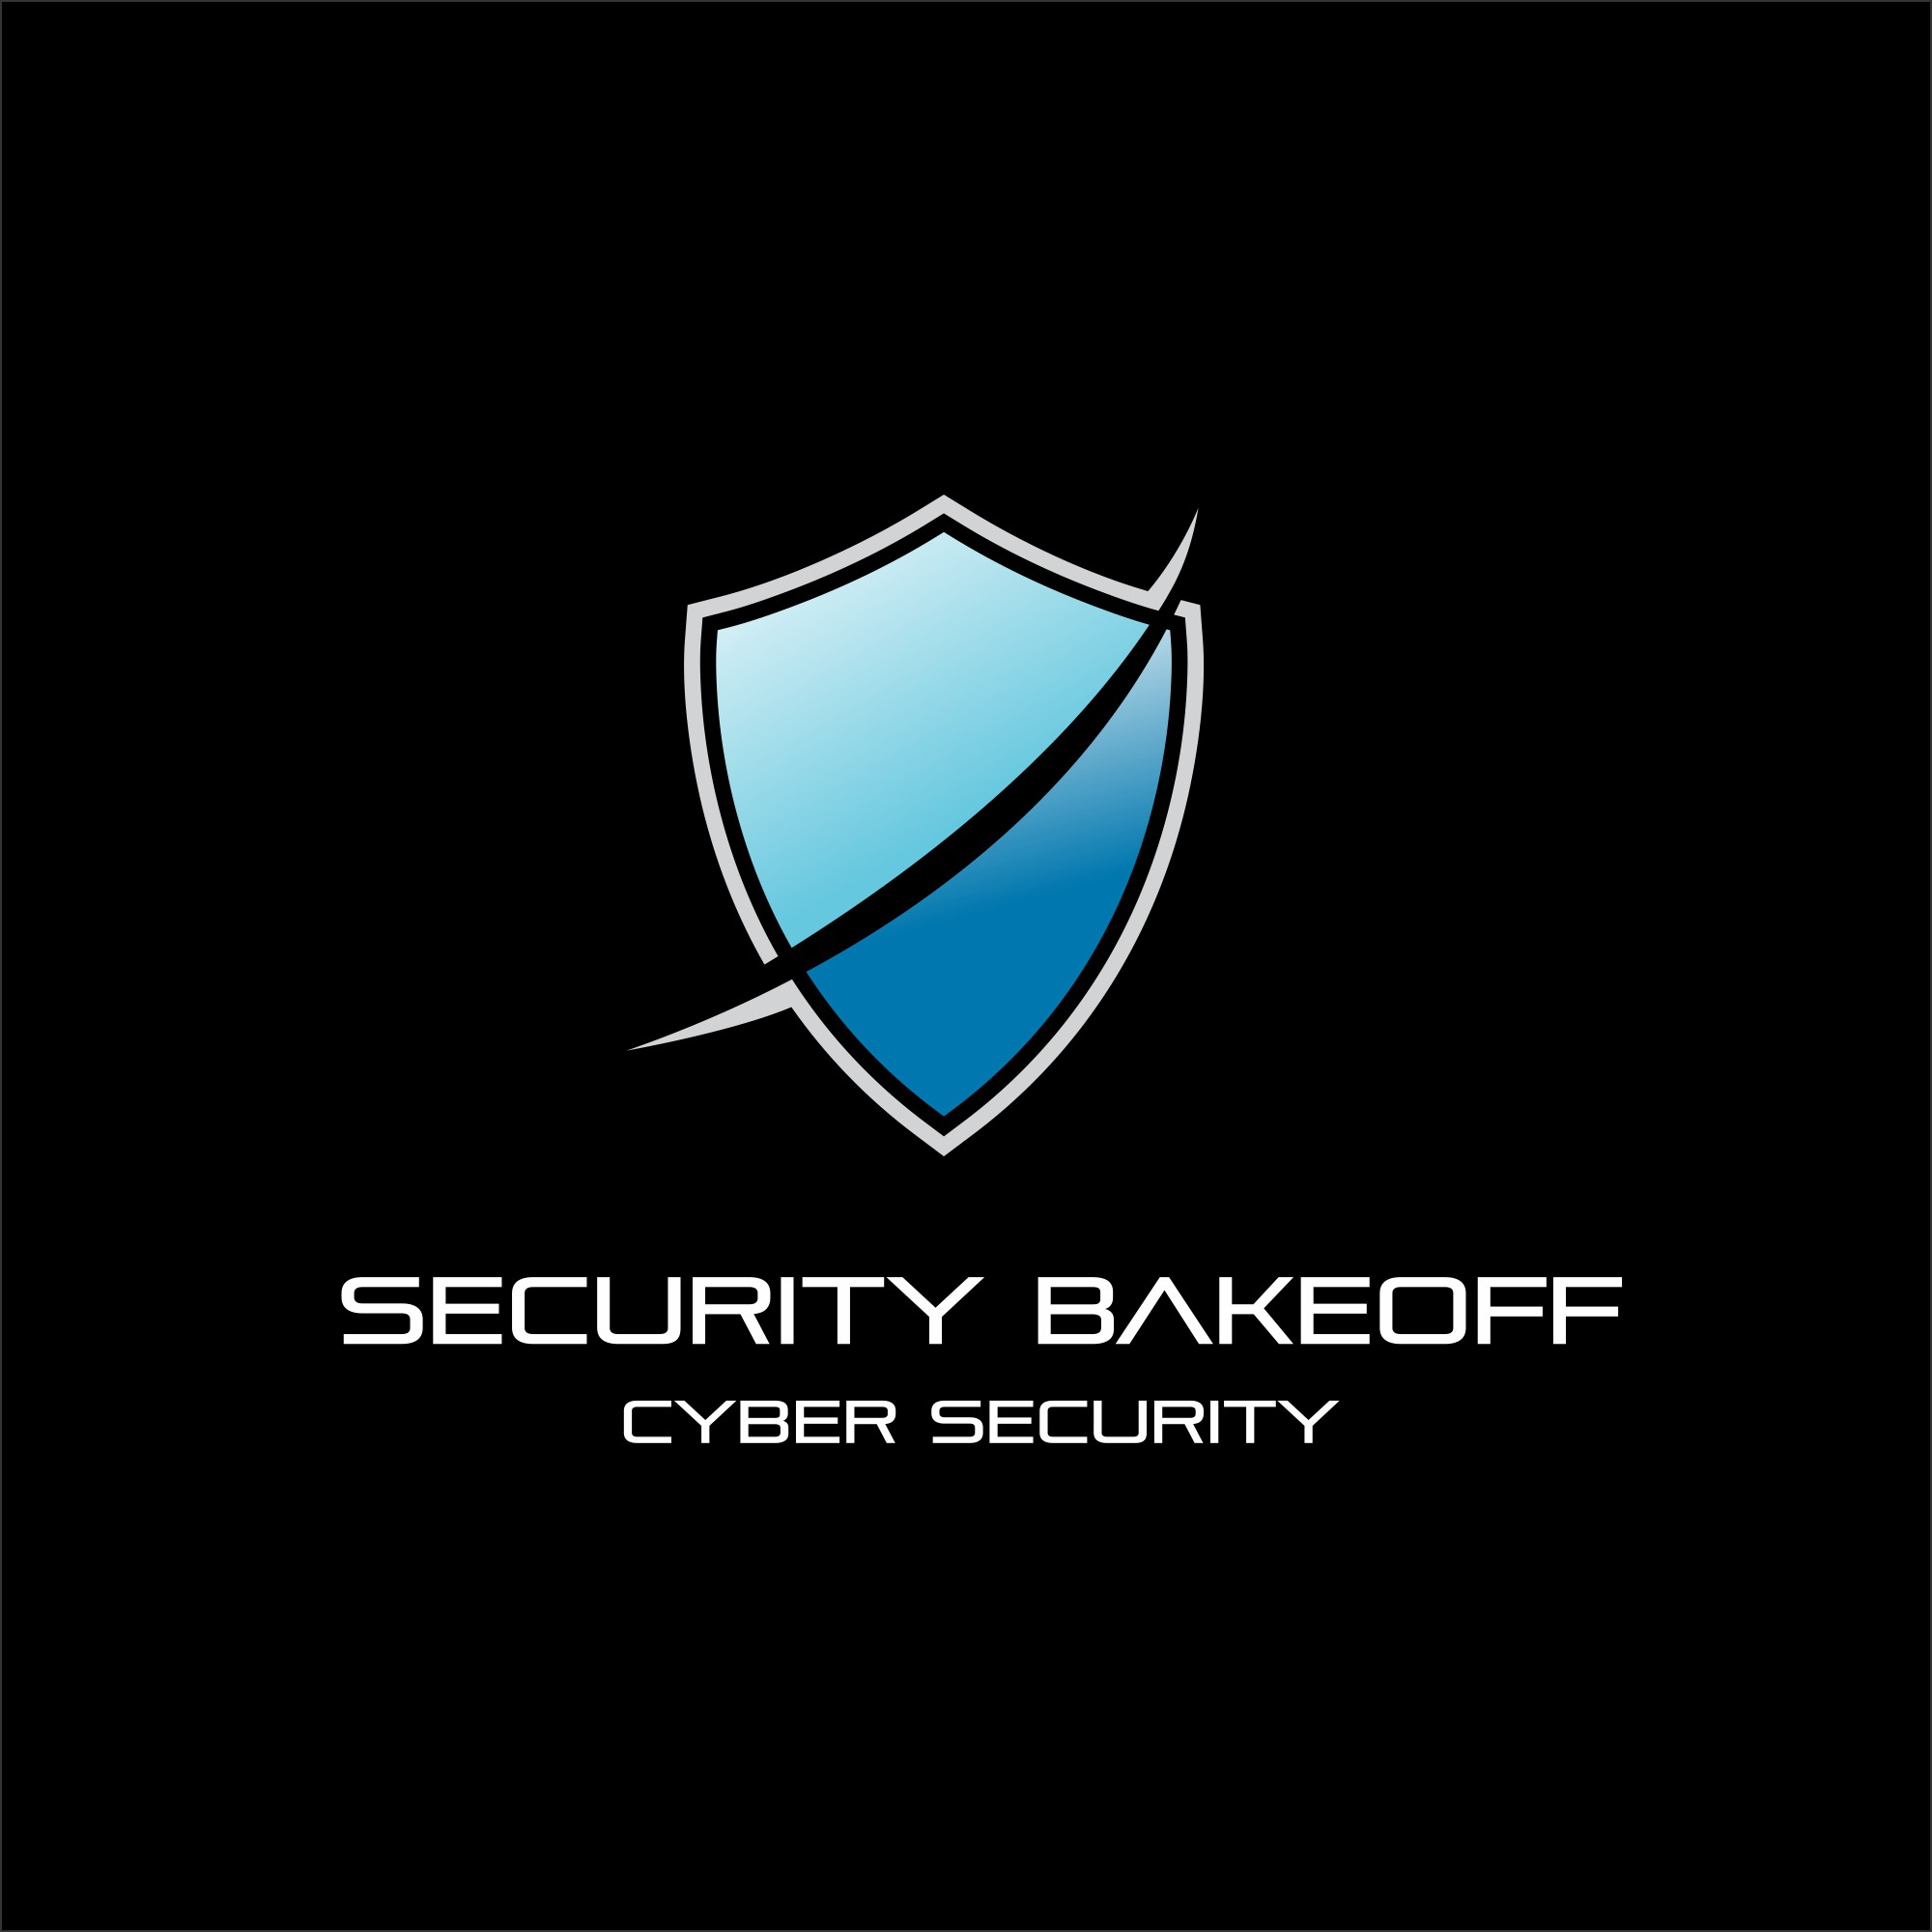 Cyber Security Bakeoff!